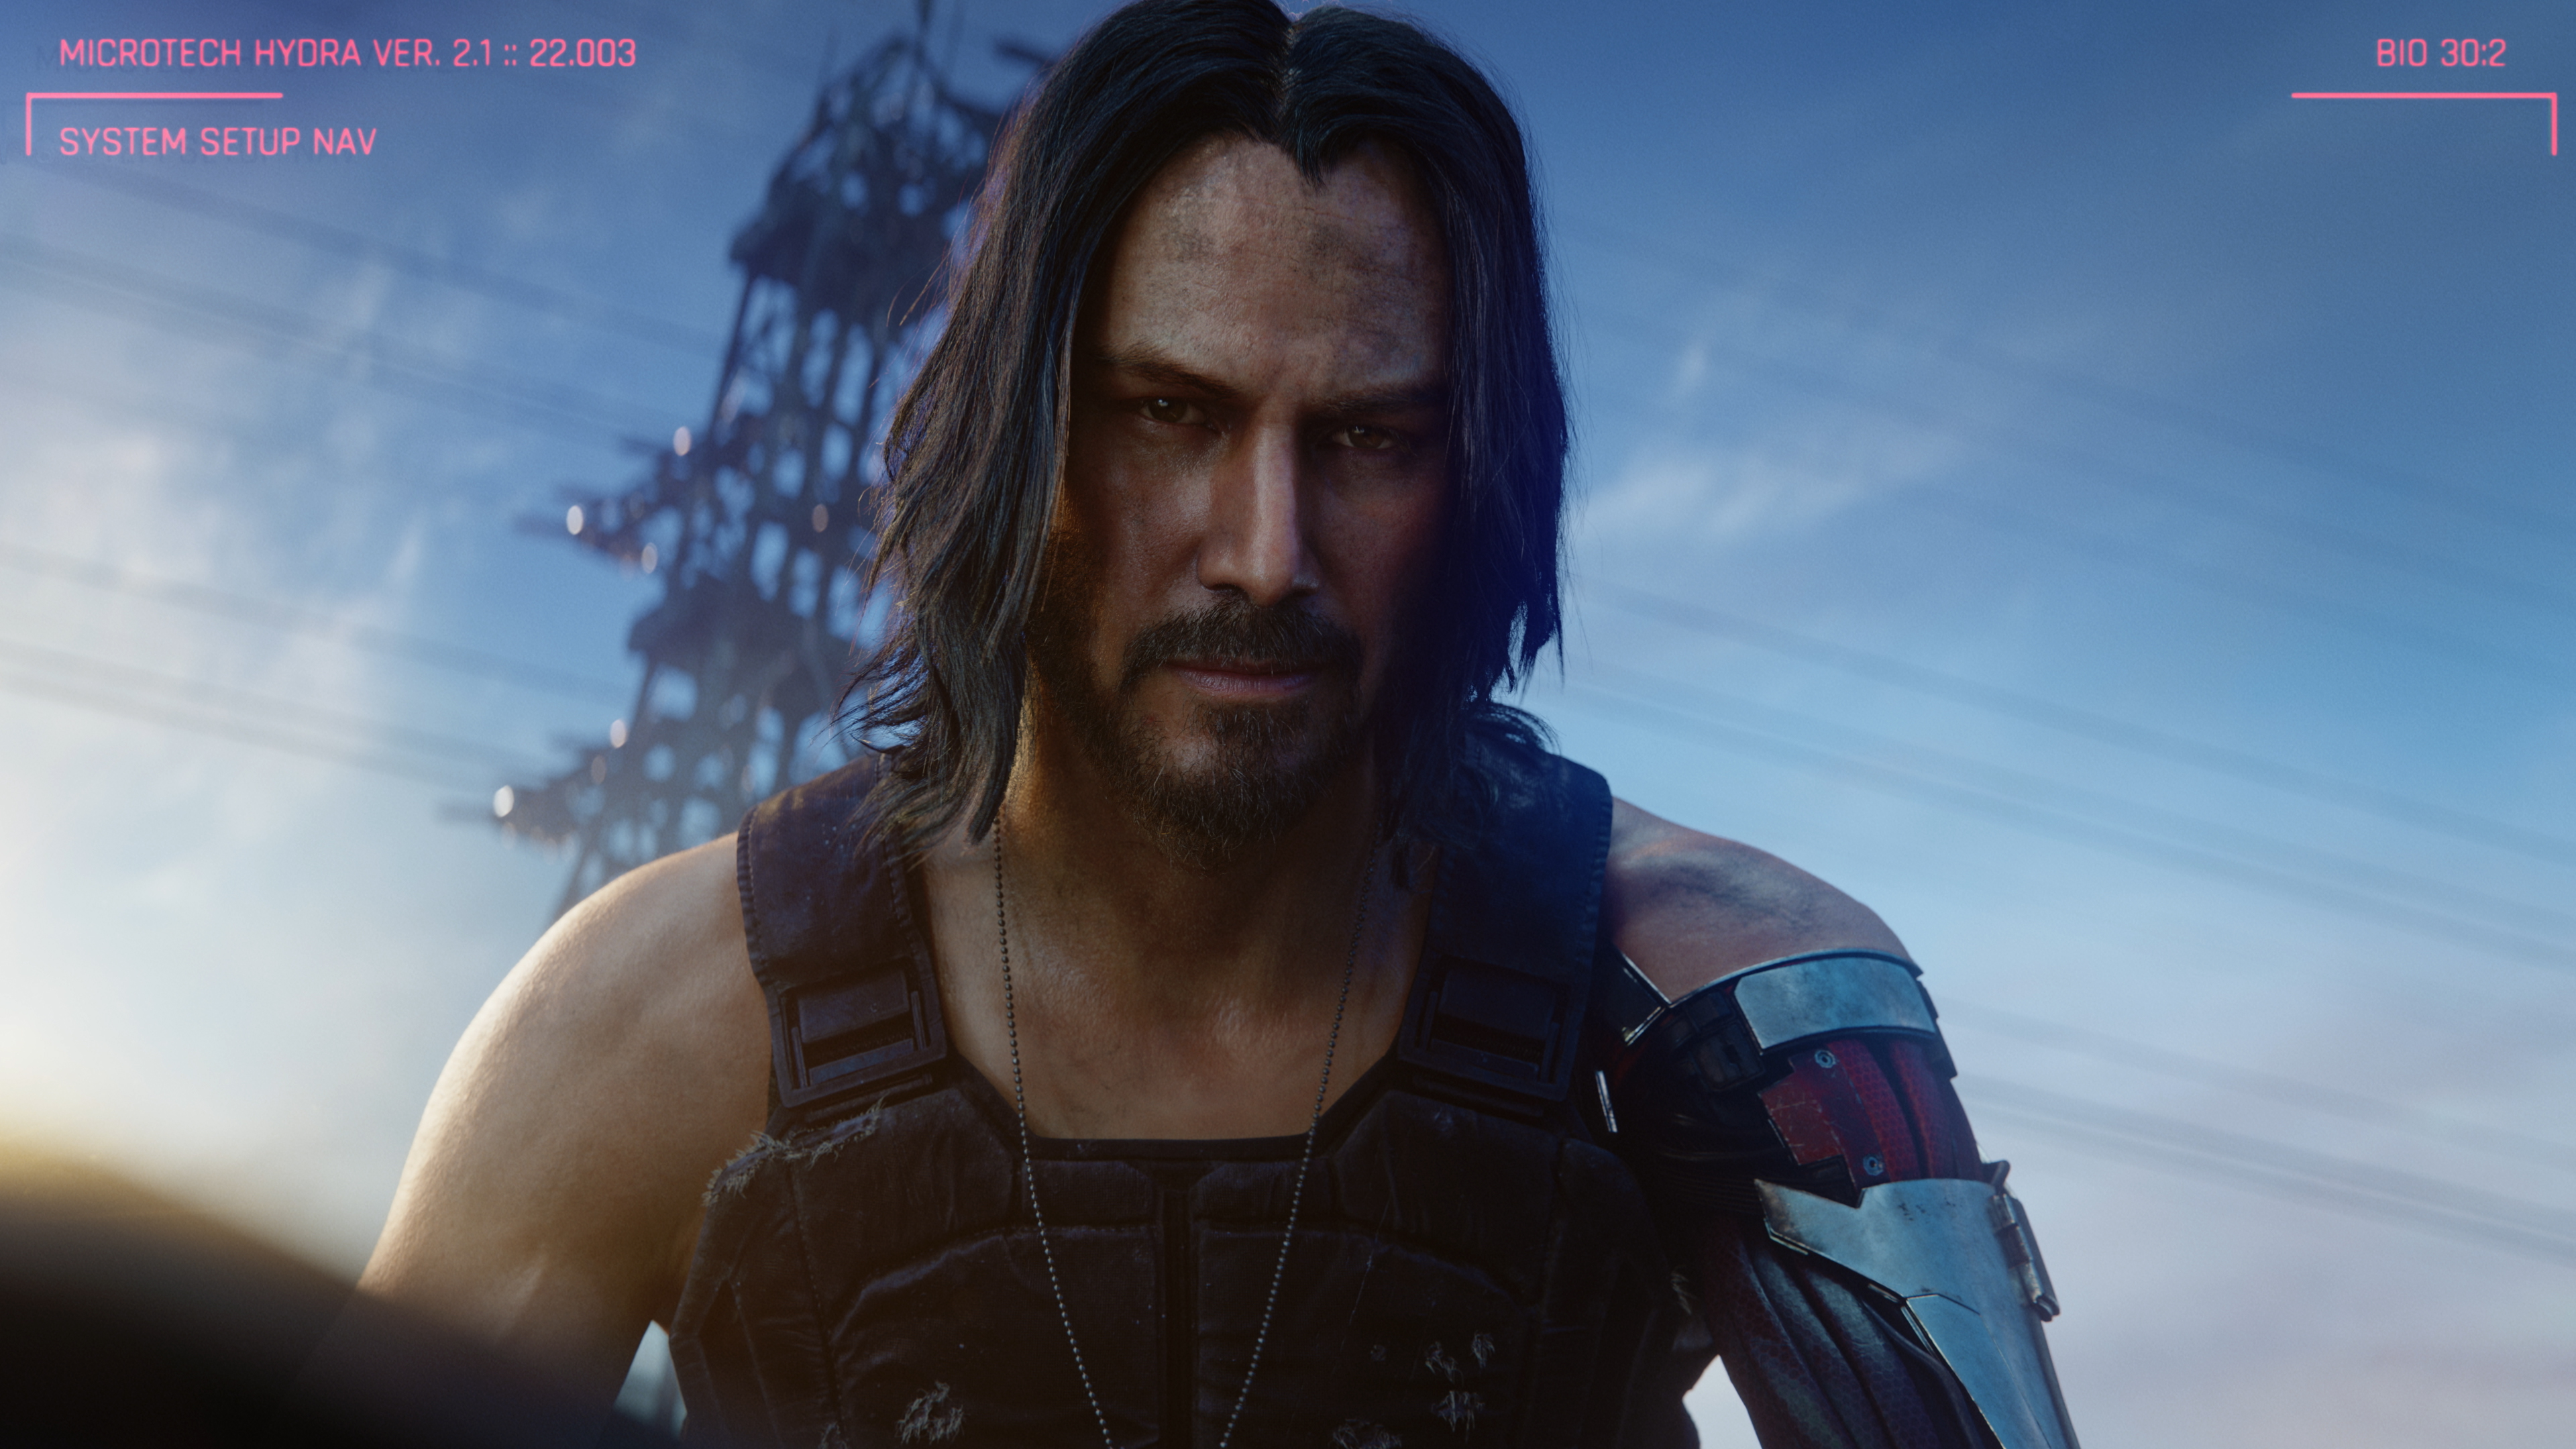 Cyberpunk 2077 will have a 200 page lore book about Night City | PC Gamer